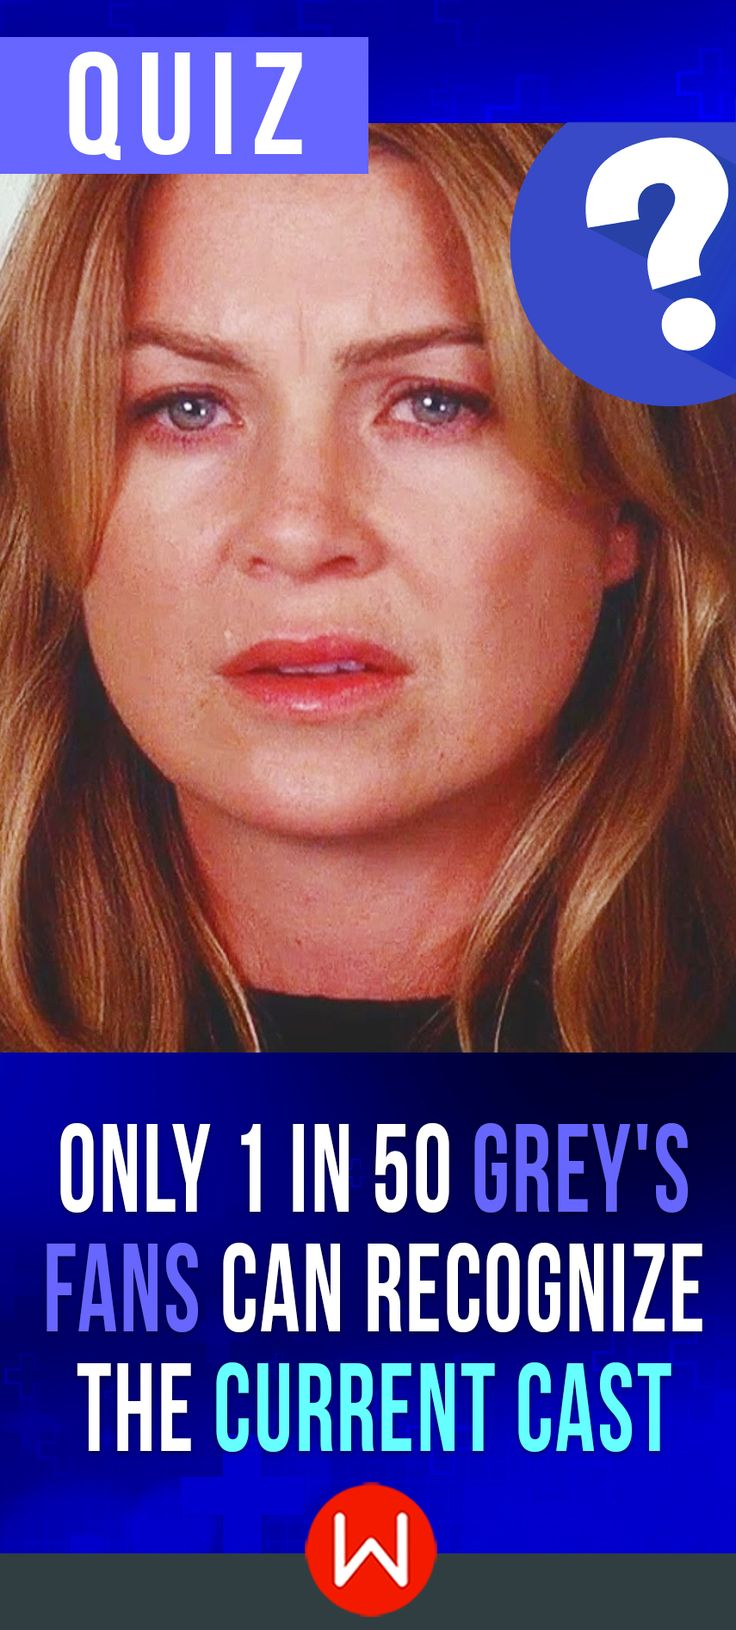 How well do you think you remember the current cast members of Grey's Anatomy? Go ahead and take this quiz to find out! GA Trivia quiz. Greys Anatomy 2017. Do you know all the current Grey's Anatomy characters? Let's see! Shonda Rhimes, Shondaland. Grey Sloan Hospital. Meredith Grey. Ellen Pompeo.